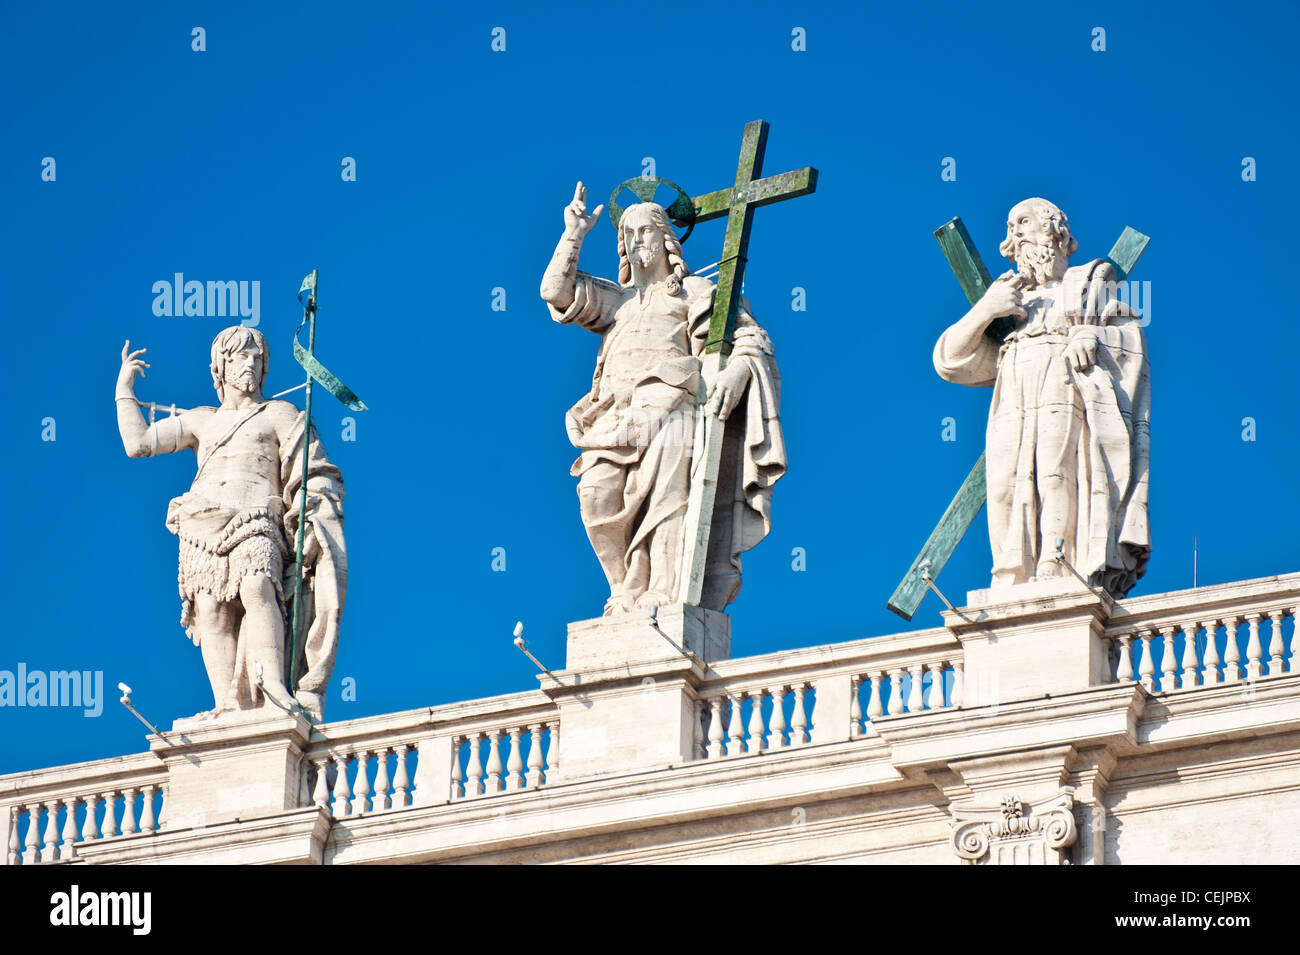 The statues of the saints on top of the roof of St. Peter's Basilica, Vatican, Italy. - Stock Image